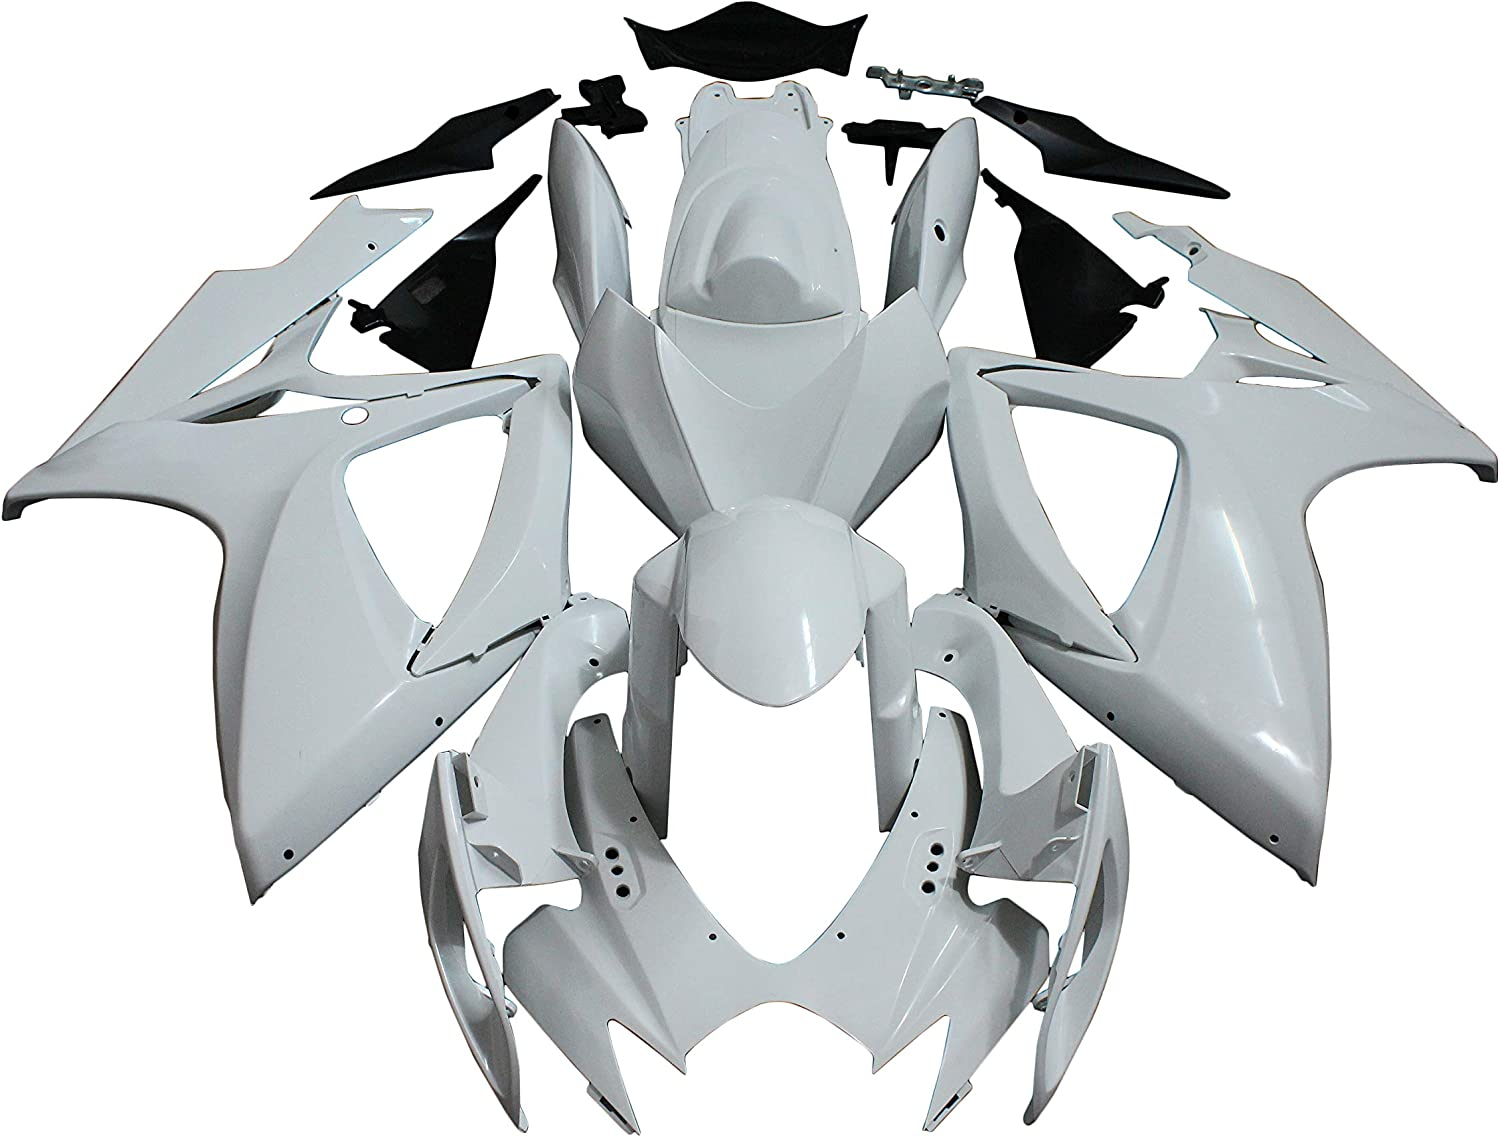 FFMT Motorcycle Fairings ABS Molded Unpainted Fits Fairing El Paso Mall f High order Kit